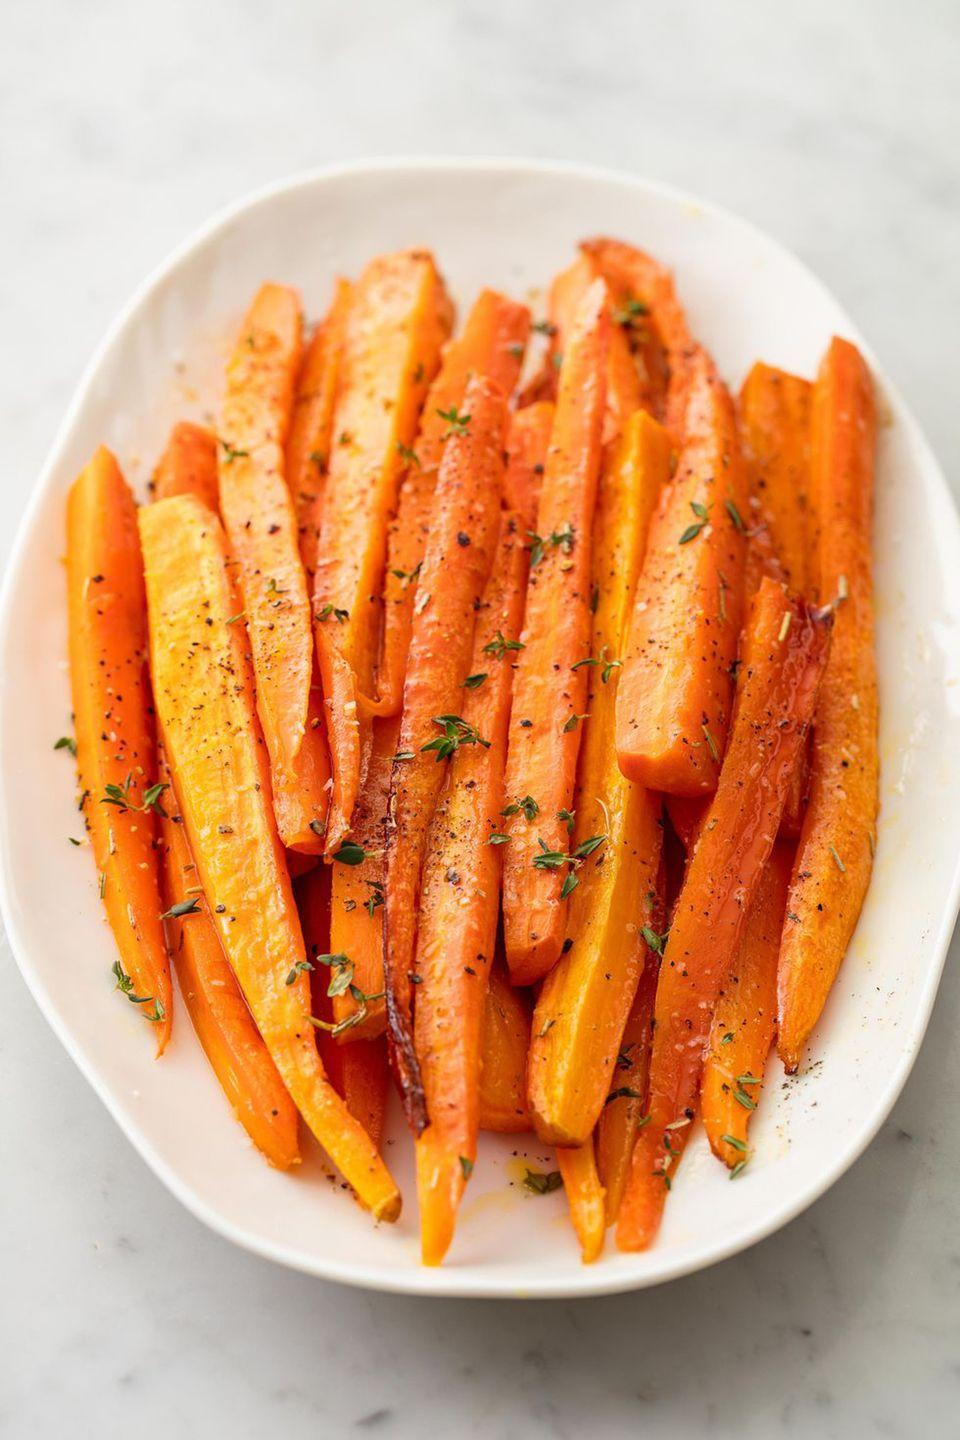 "<p>Garlic and honey turn these plain ol' carrots into a side to remember. </p><p><em><a href=""https://www.delish.com/cooking/recipe-ideas/recipes/a58381/honey-glazed-carrots-recipe/"" rel=""nofollow noopener"" target=""_blank"" data-ylk=""slk:Get the recipe from Delish »"" class=""link rapid-noclick-resp"">Get the recipe from Delish »</a></em></p>"